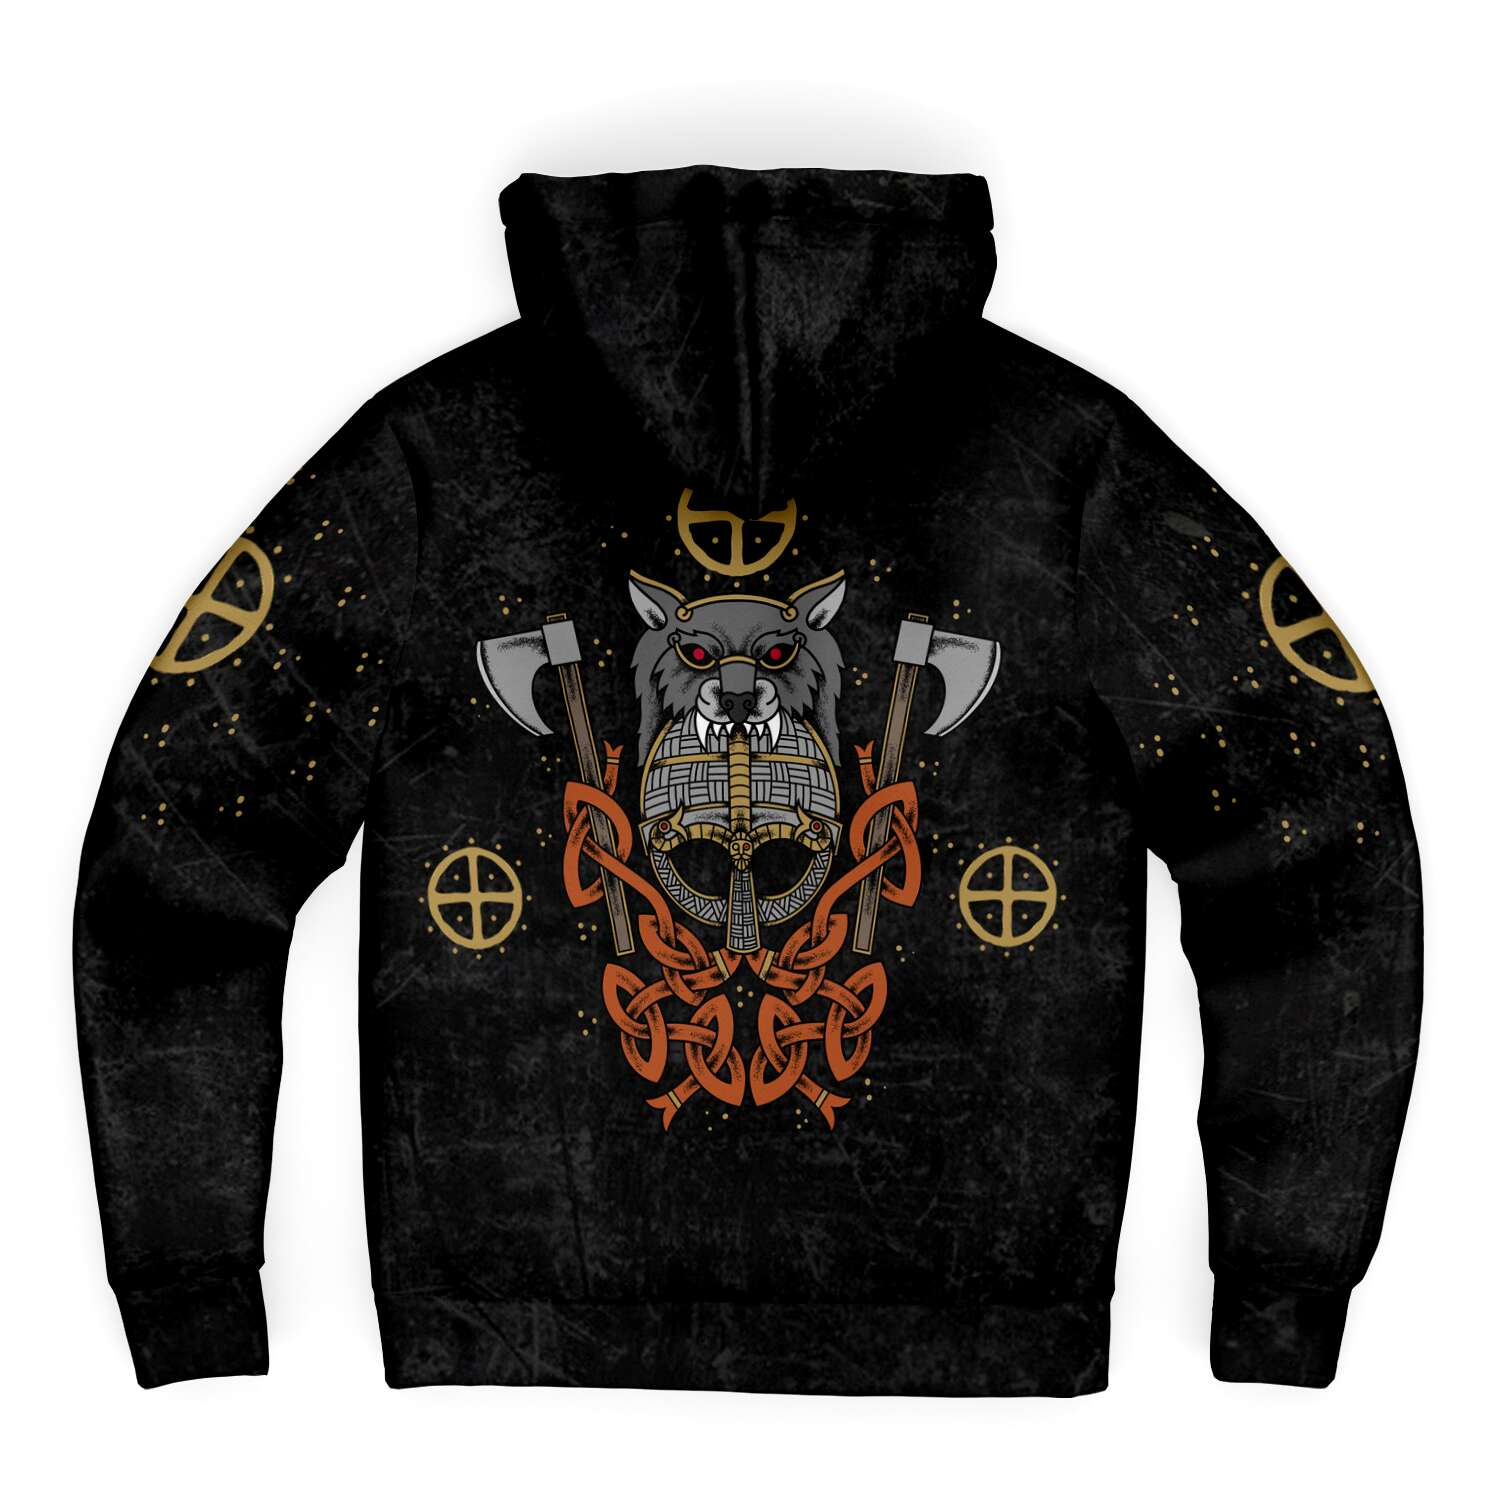 Berserker Microfleece Viking Zip-up Hoodie